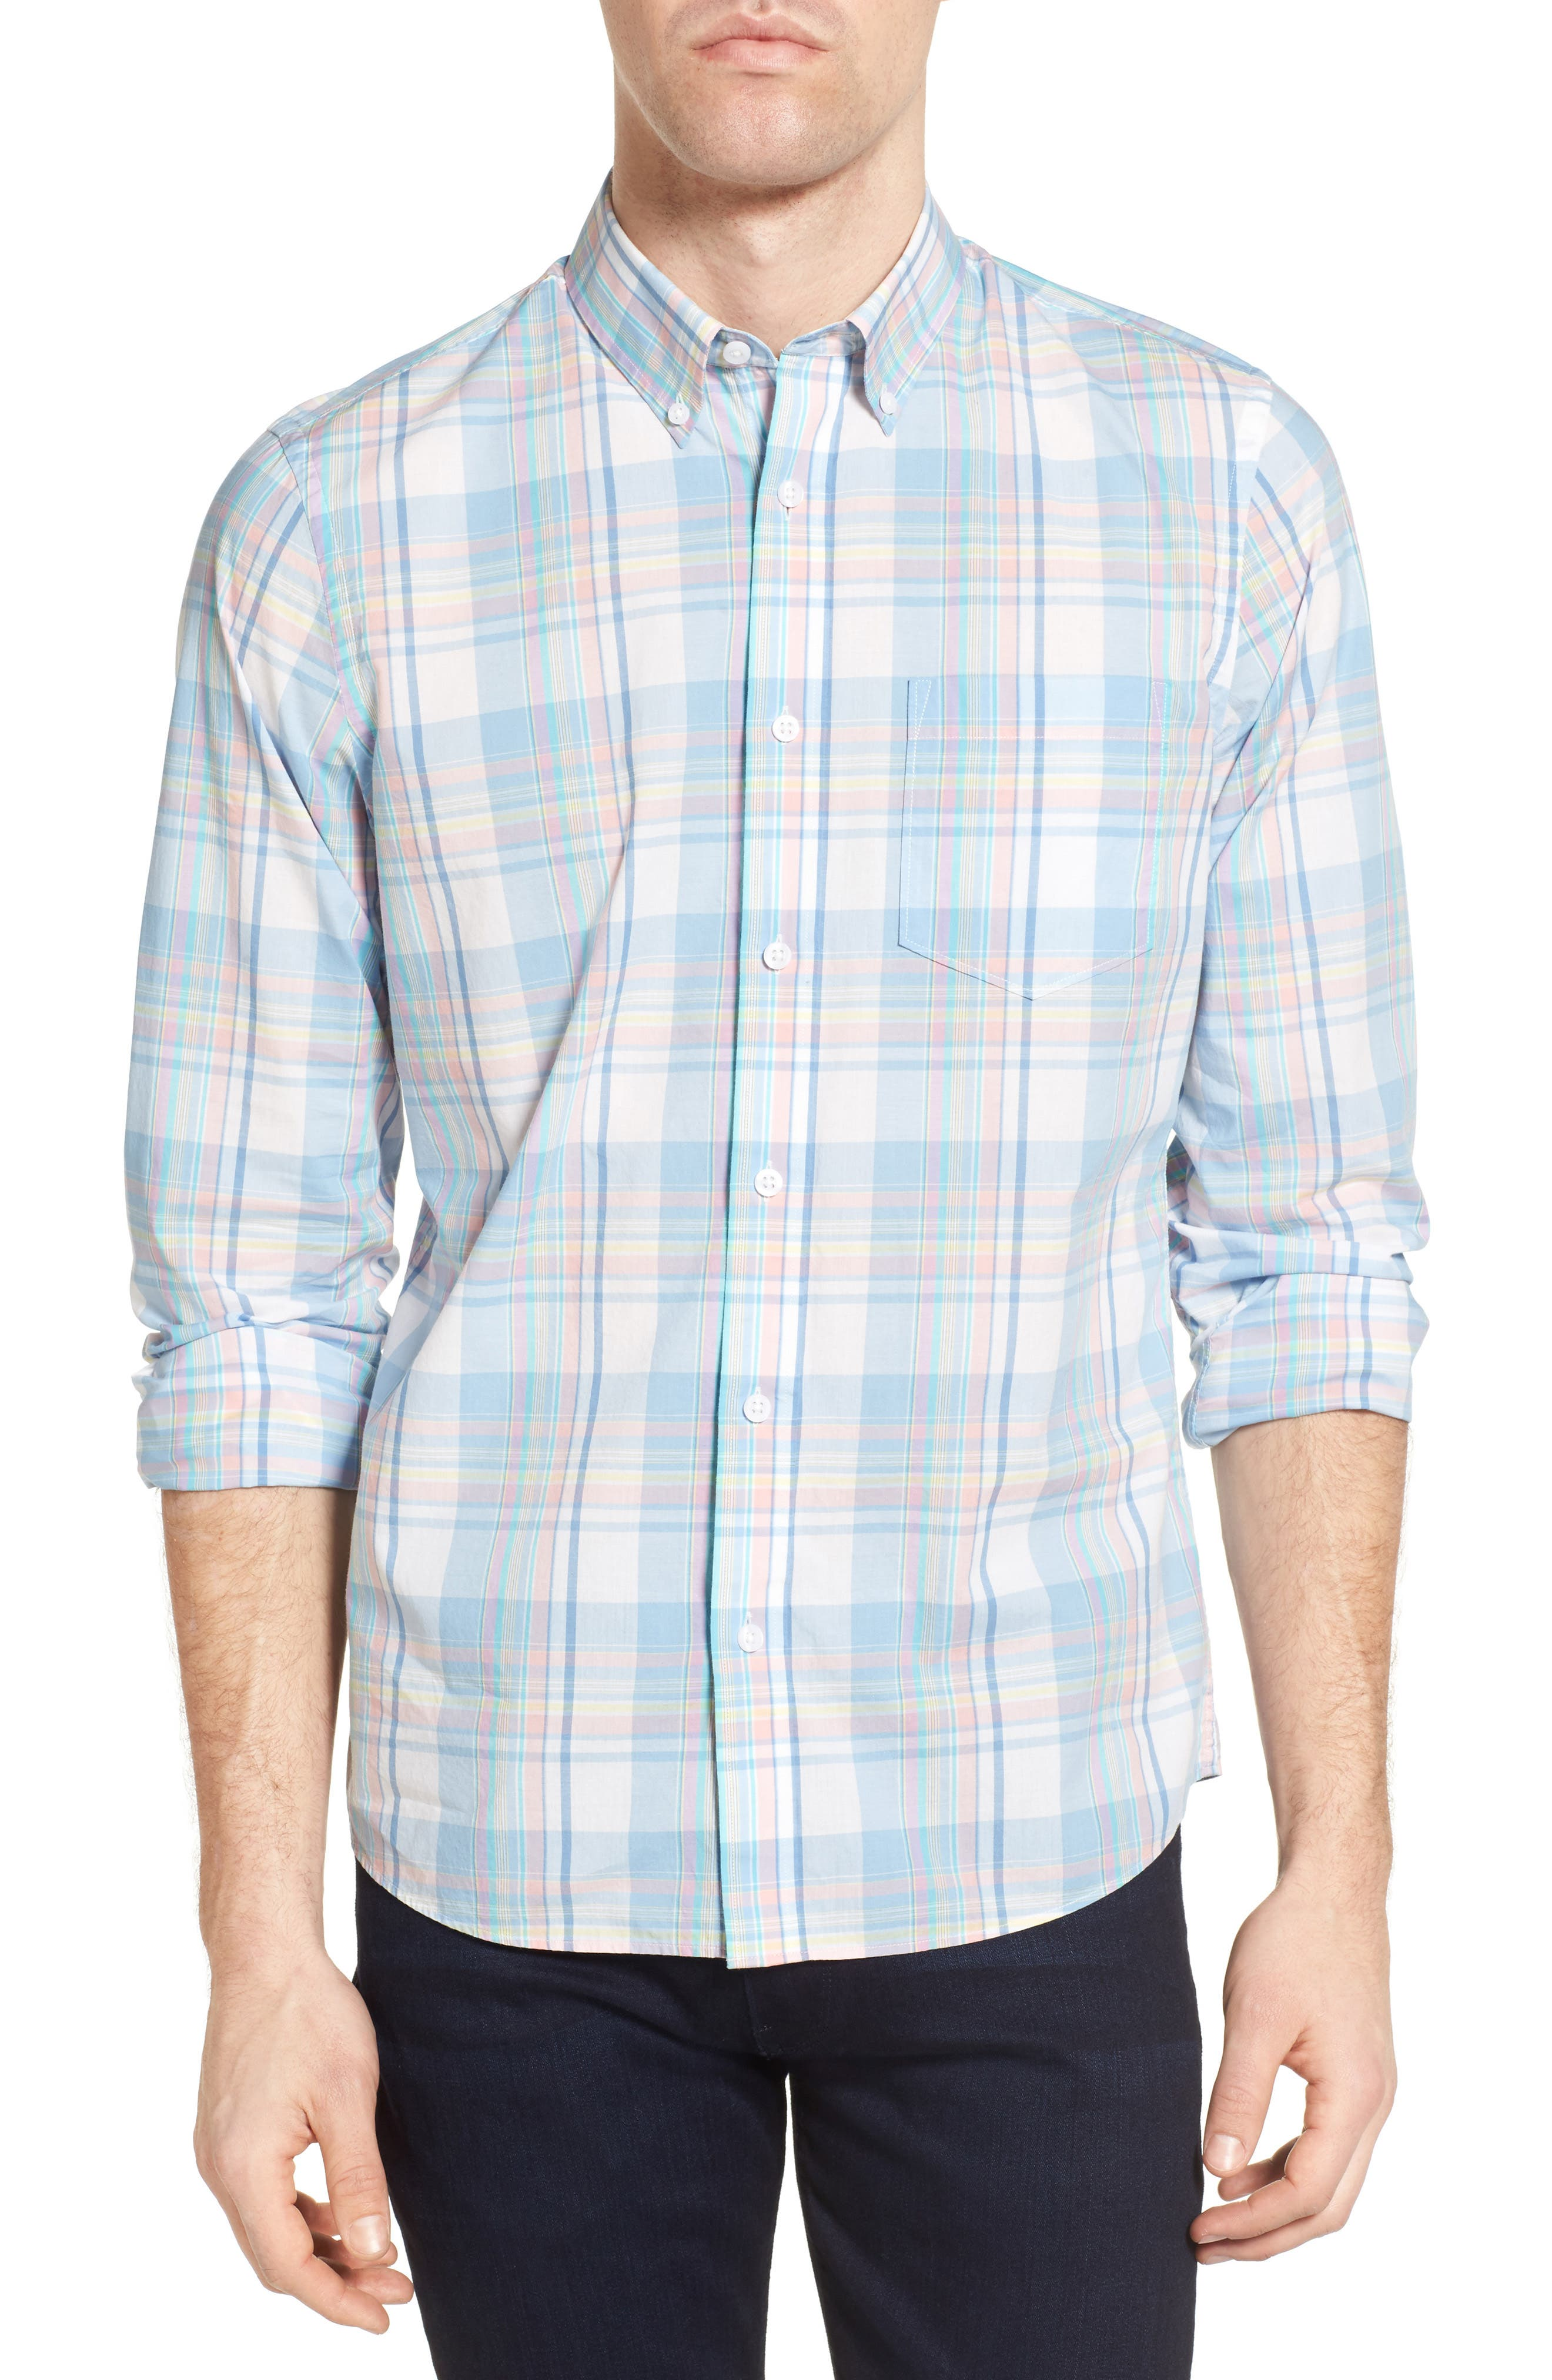 Nordstrom Men's Shop Slim Fit Washed Plaid Sport Shirt (Regular & Tall)